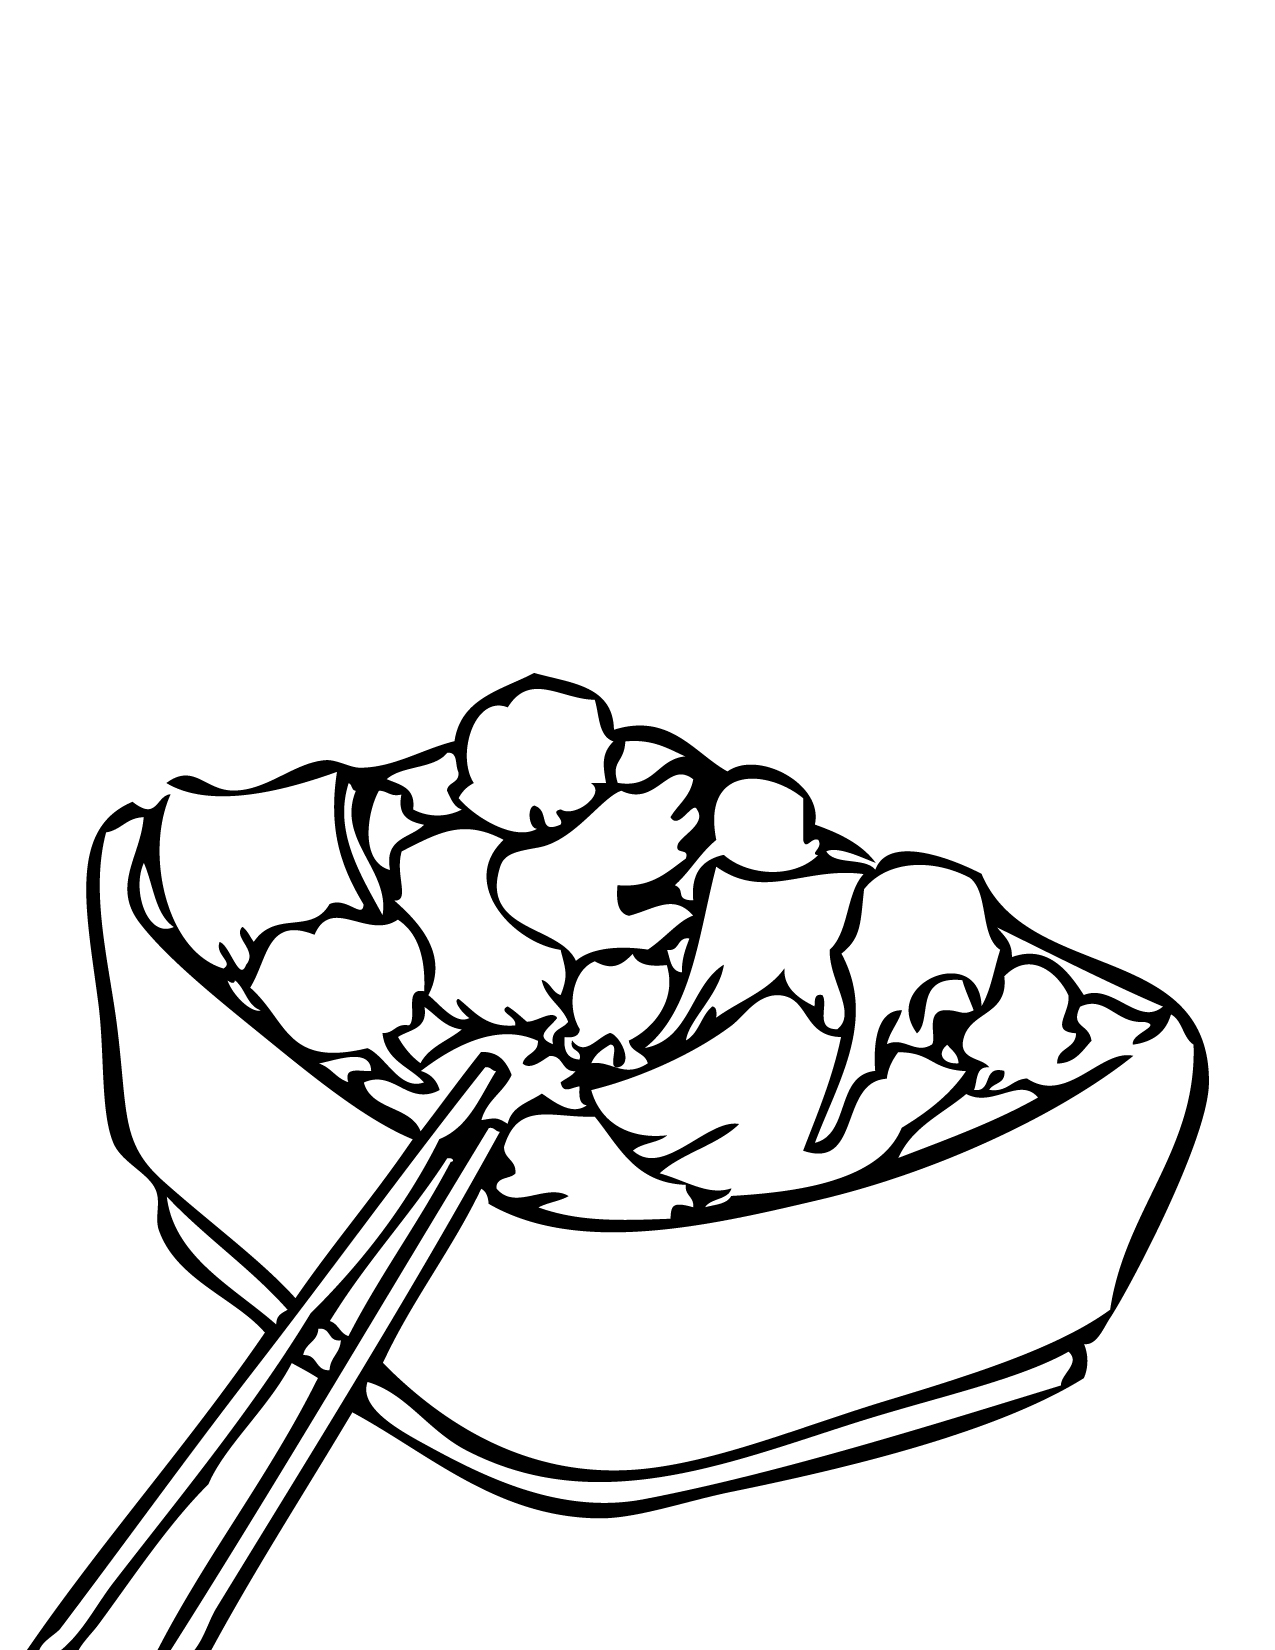 healthy20food20coloring20pages - Food Coloring Pages